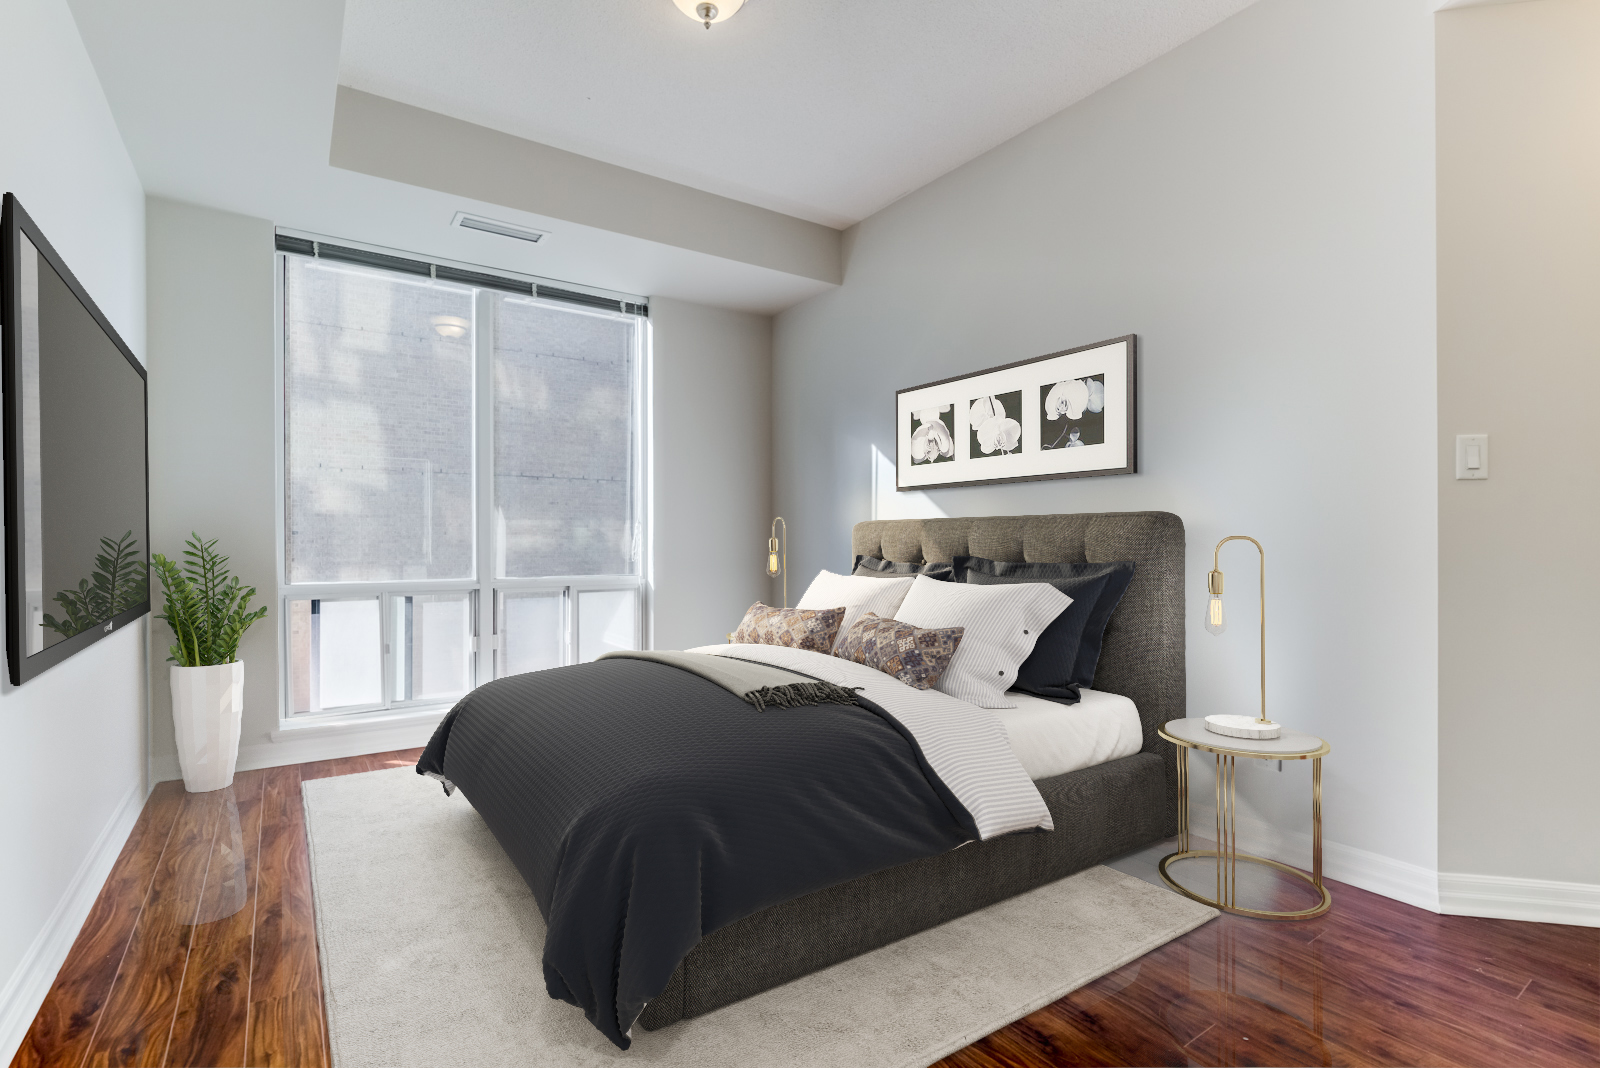 Master bedroom at 300 Bloor St E Unit 1809 with 3D rendered table lamp, carpet and bed with dark sheets.